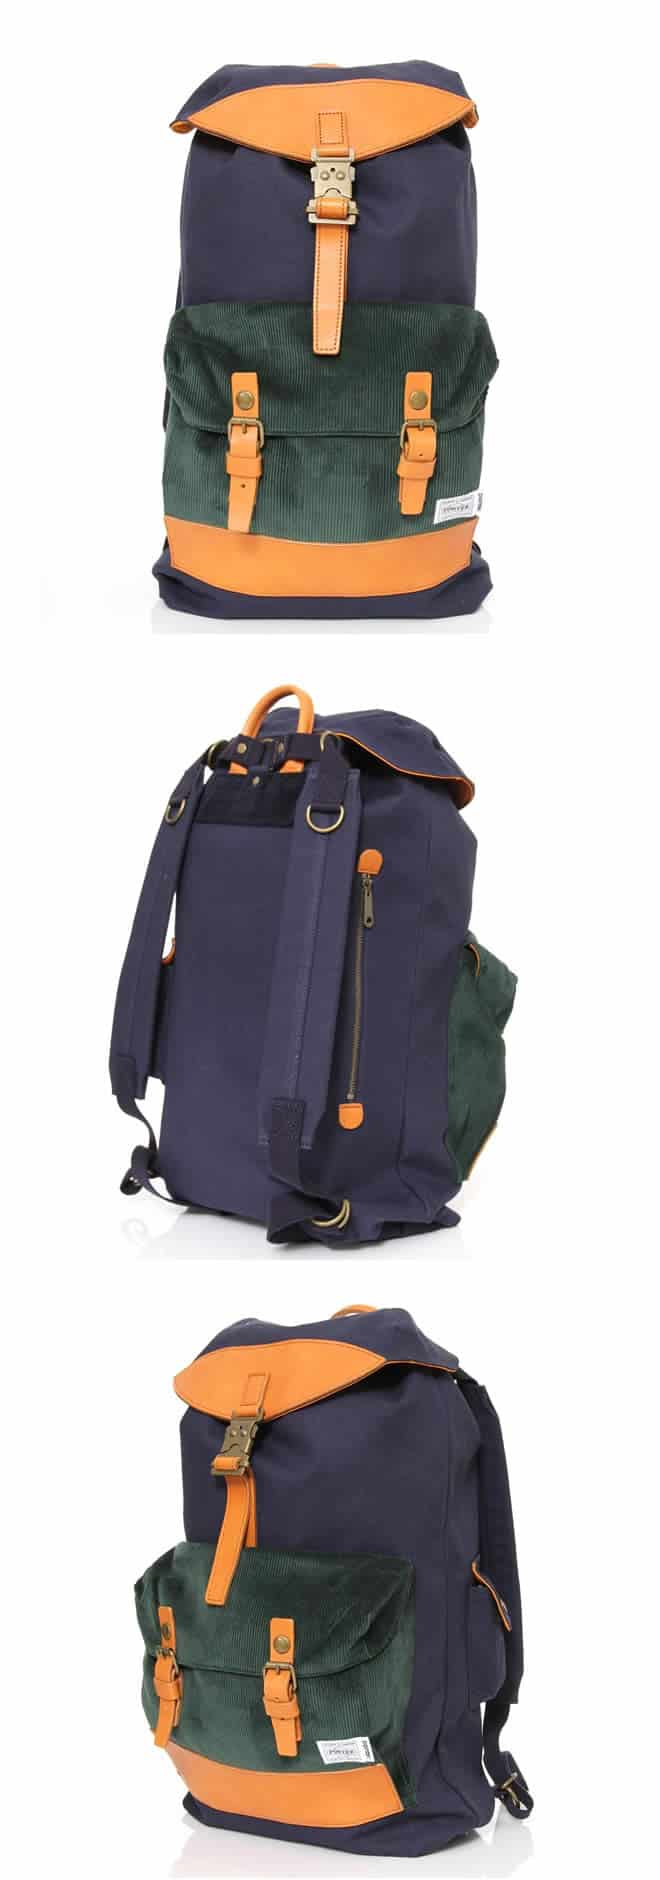 Pointer X Porter Rigby Backpack